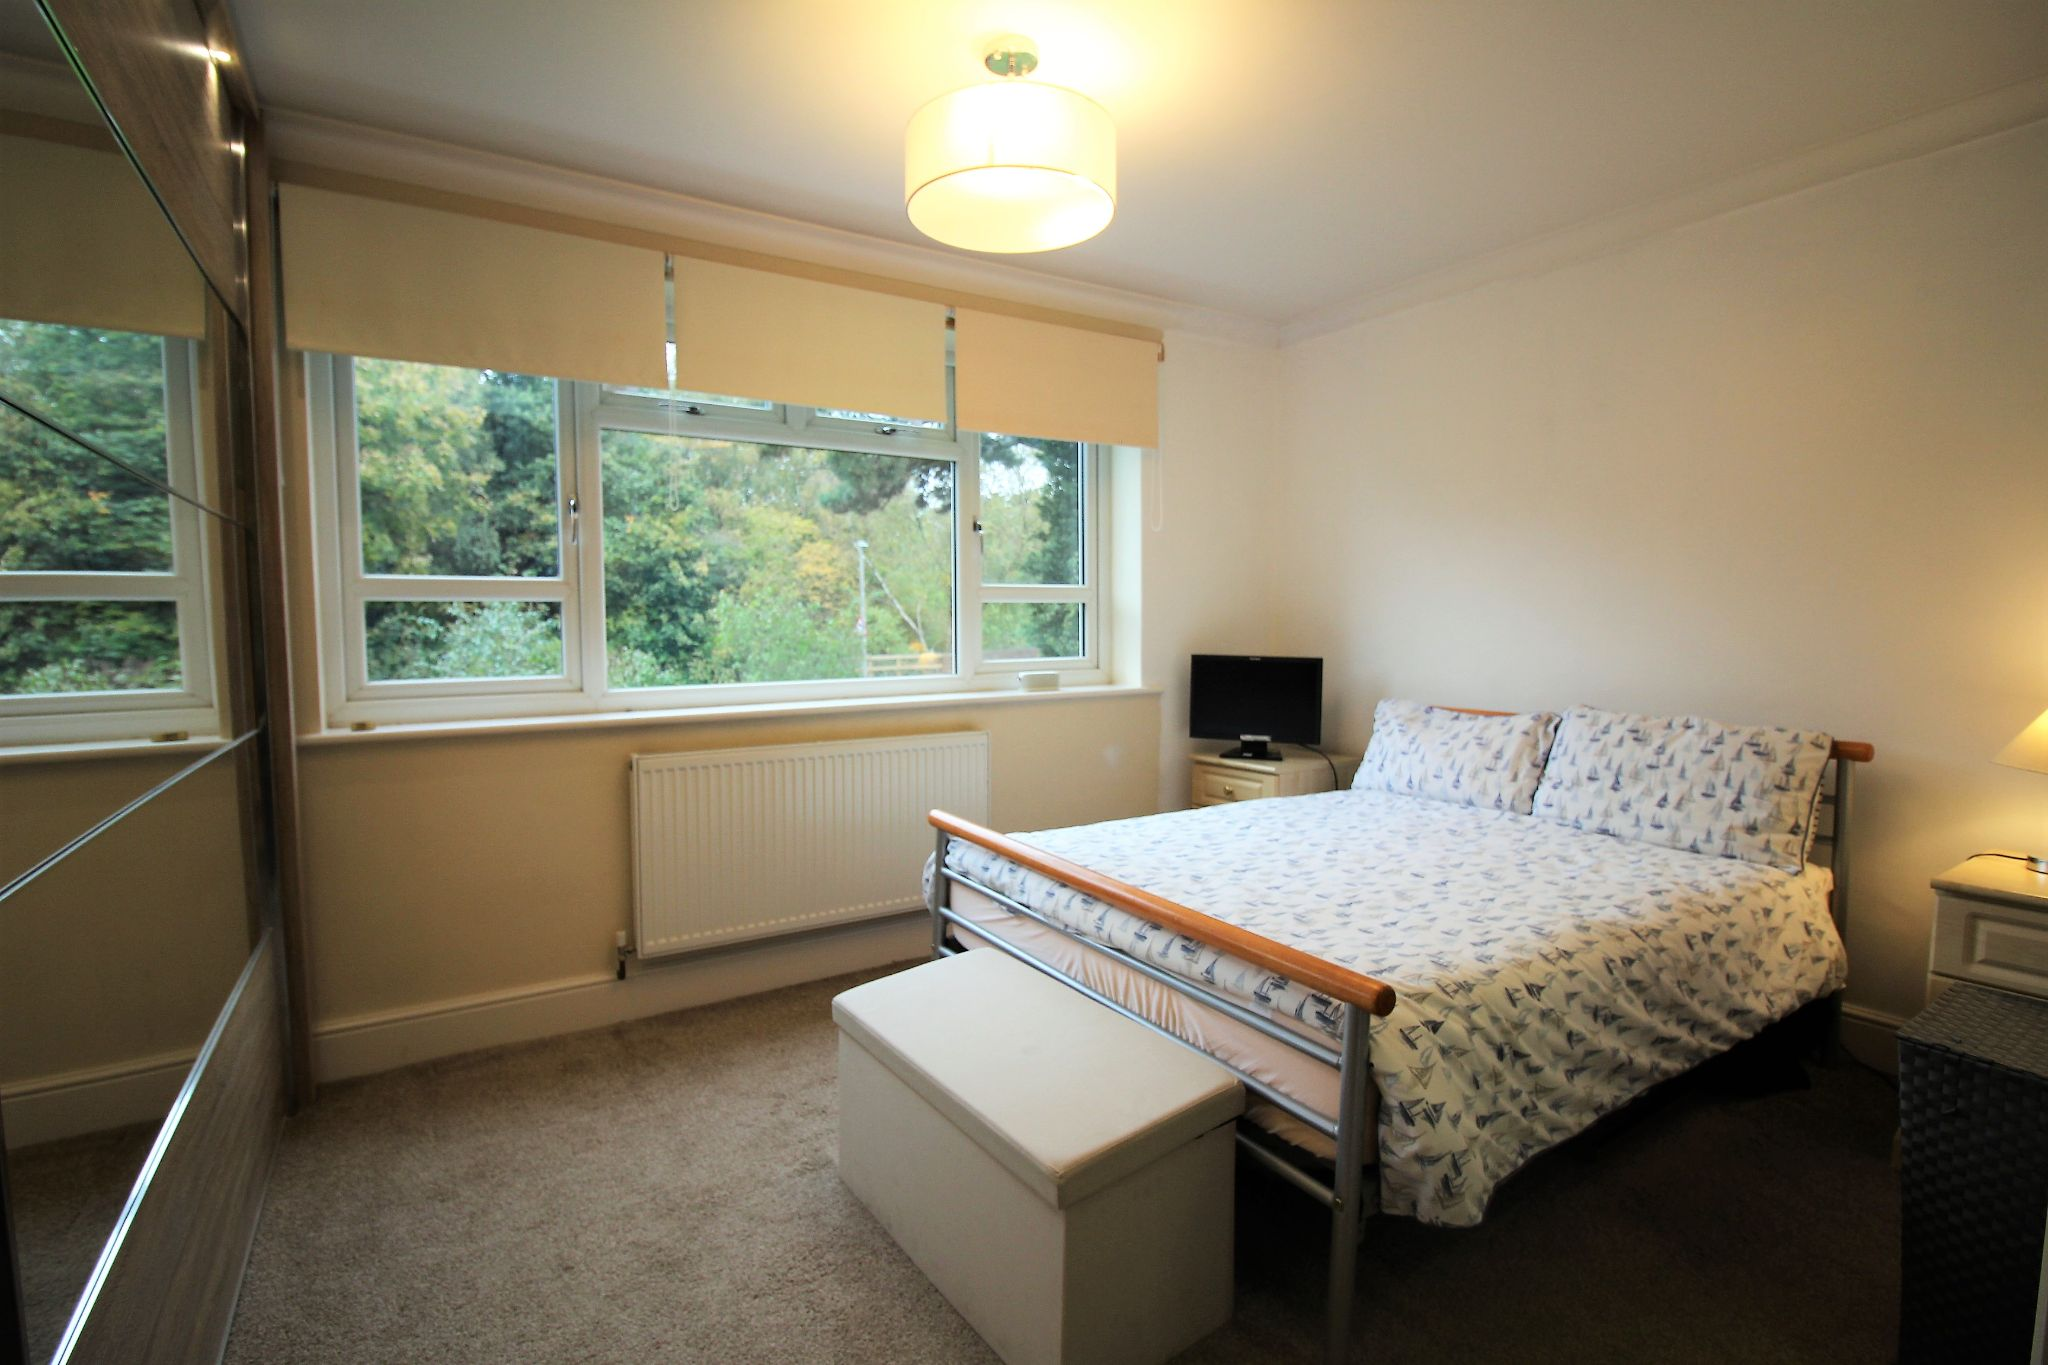 3 bedroom apartment flat/apartment Let Agreed in Solihull - Photograph 8.